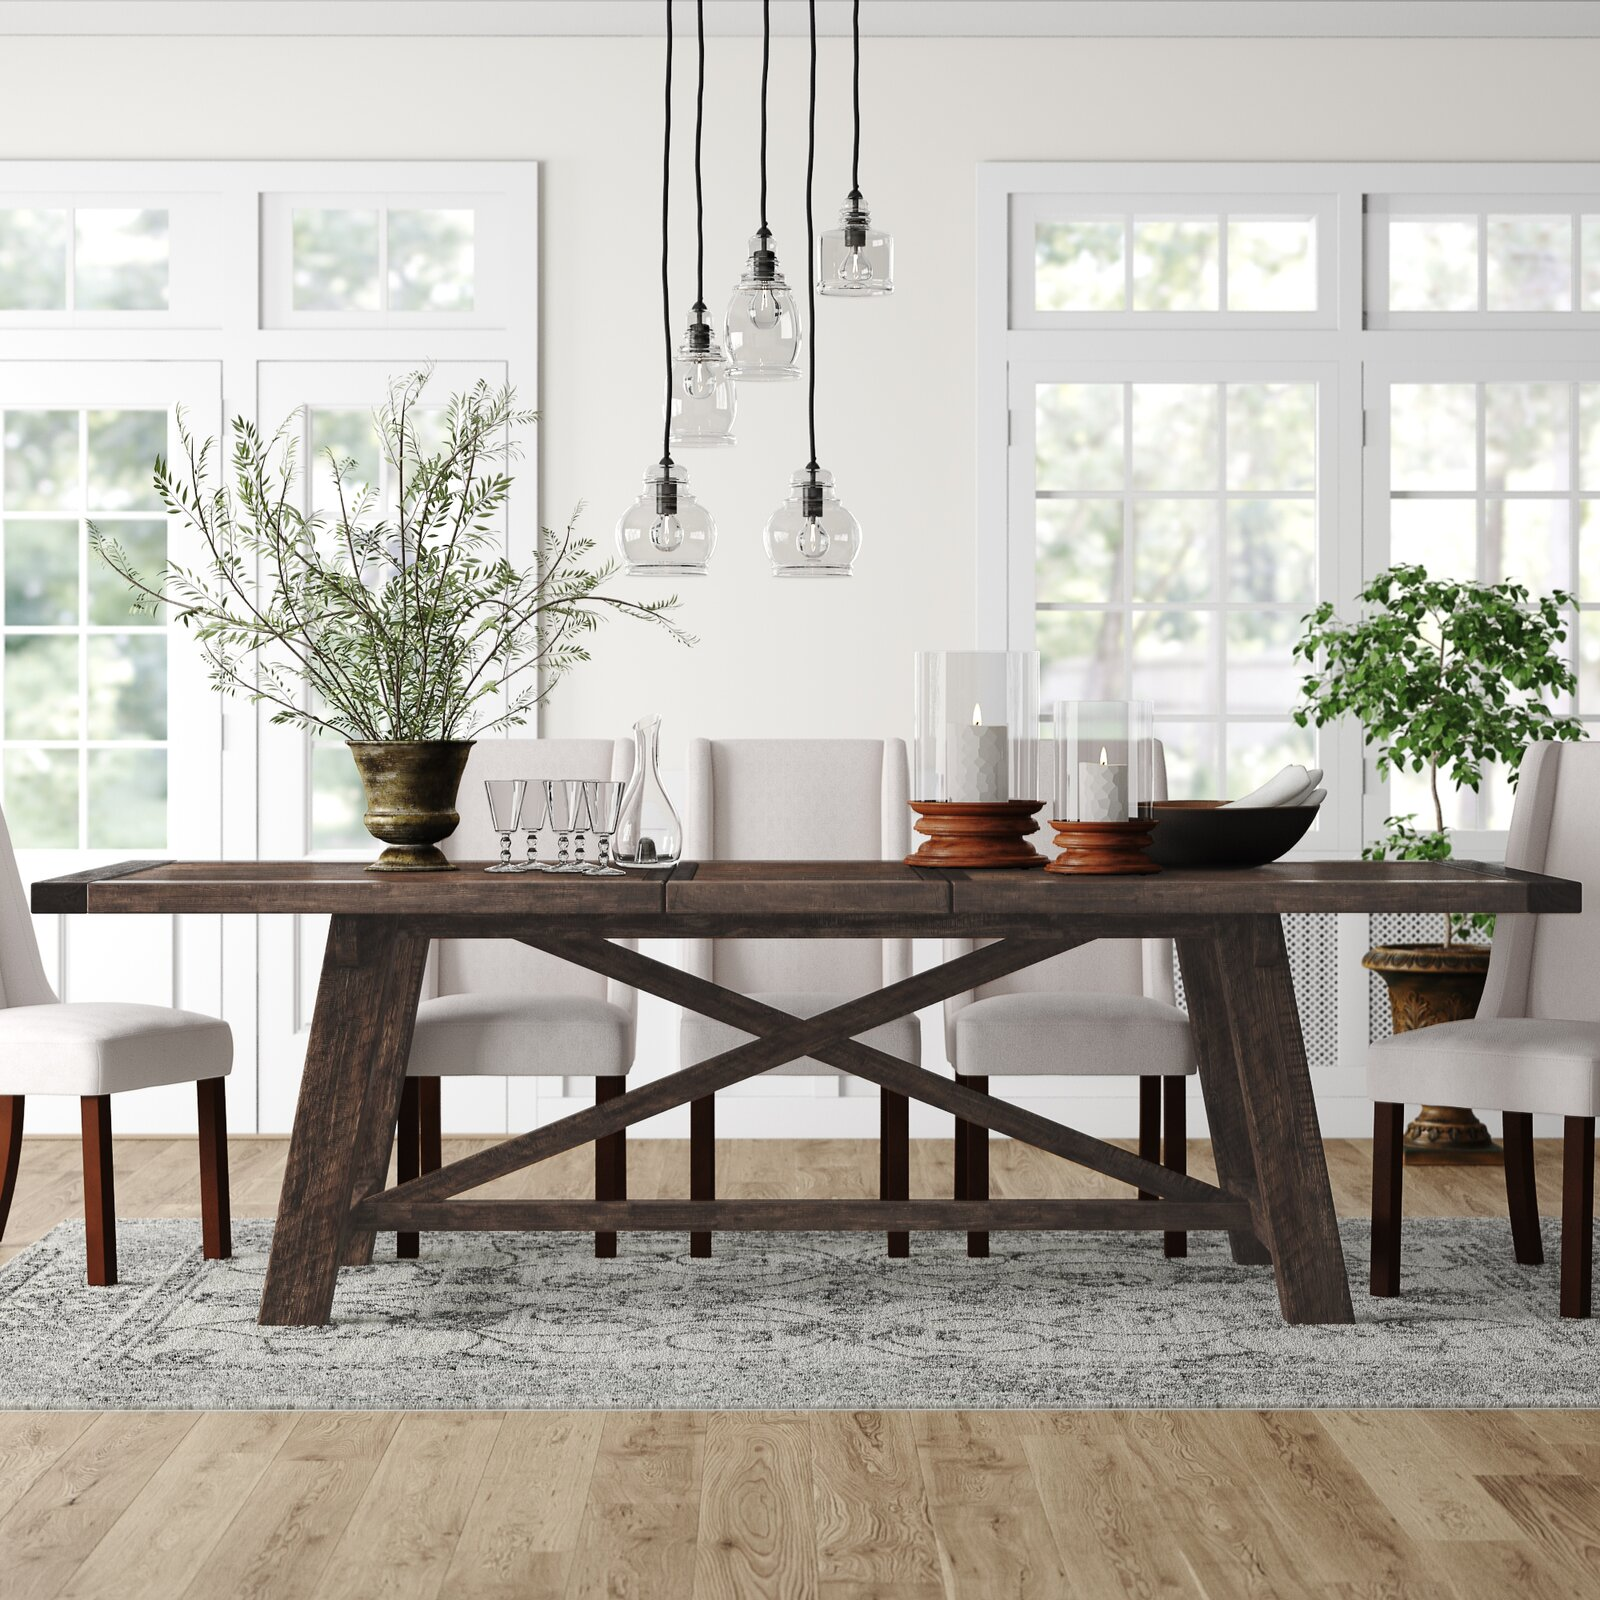 extendable-farmhouse-dining-table-trestle-base-thick-solid-acacia-wood-construction-dark-finish-seats-six-to-eight-with-included-leaf